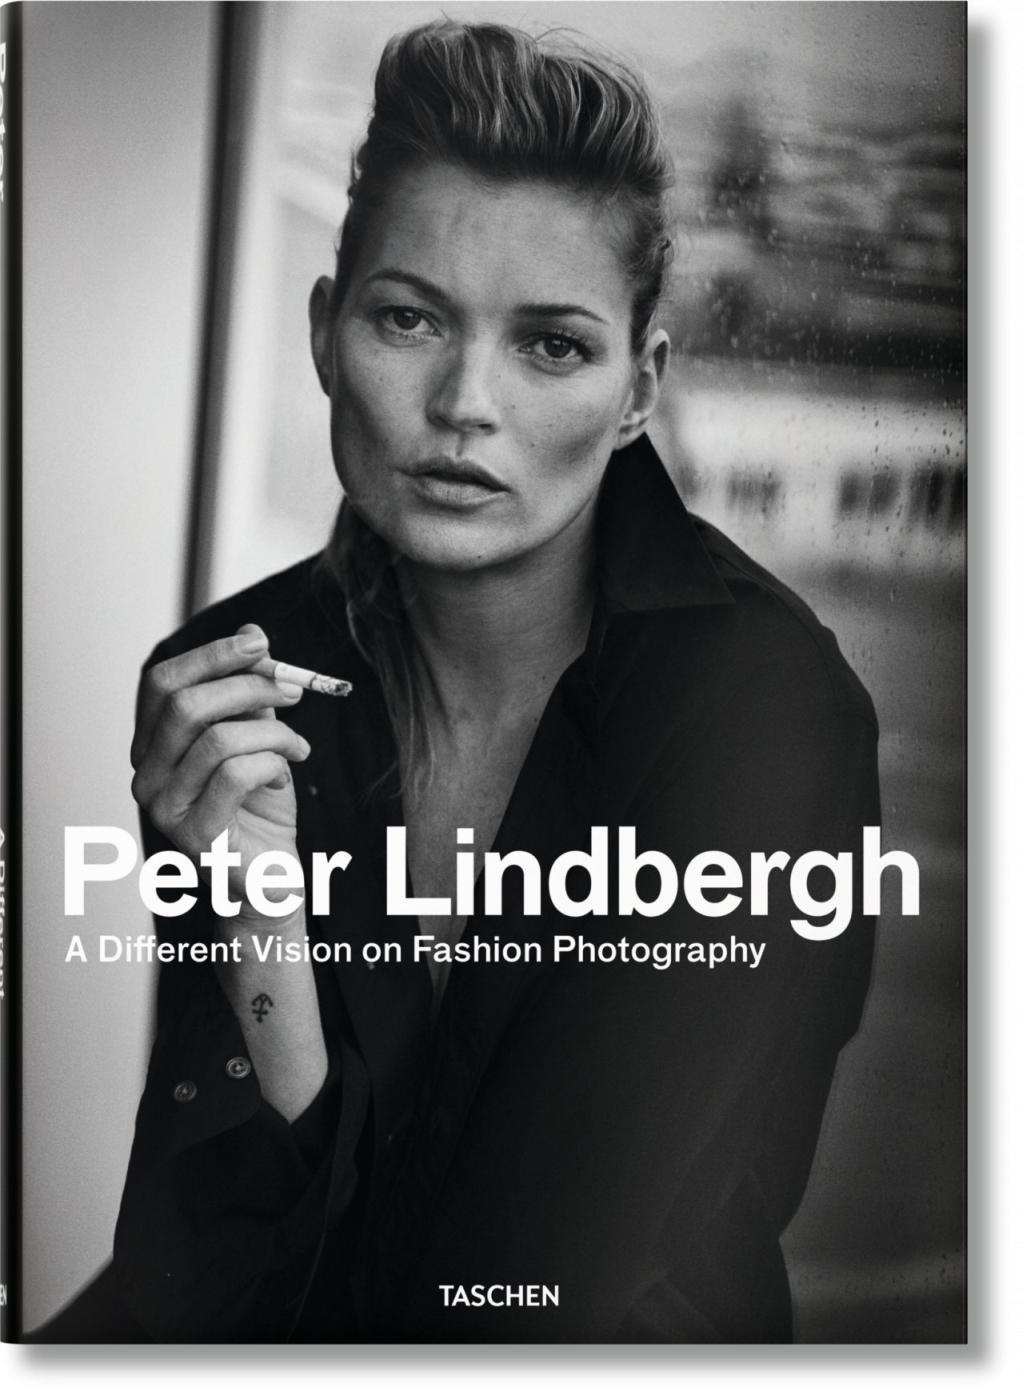 Peter Lindbergh: A Different Vision on Fashion Photography by Thierry-Maxime Loriot, ISBN: 9783836552820